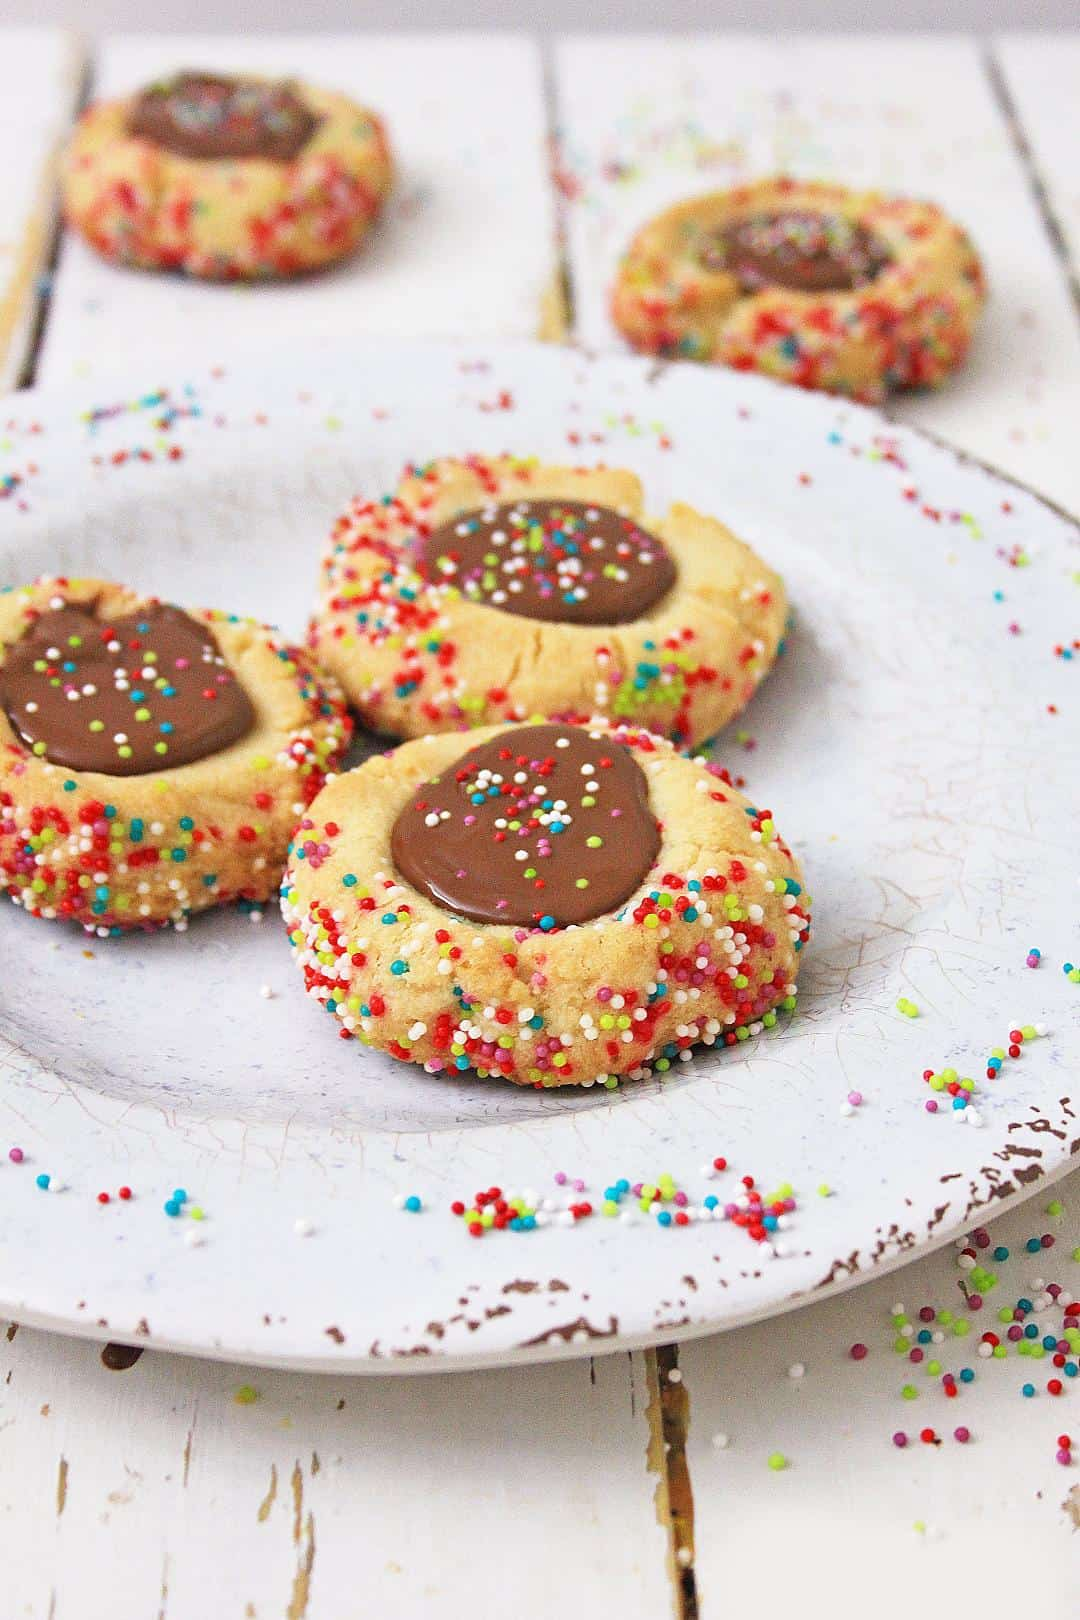 Chocolate Thumbprint Cookies with sprinkles